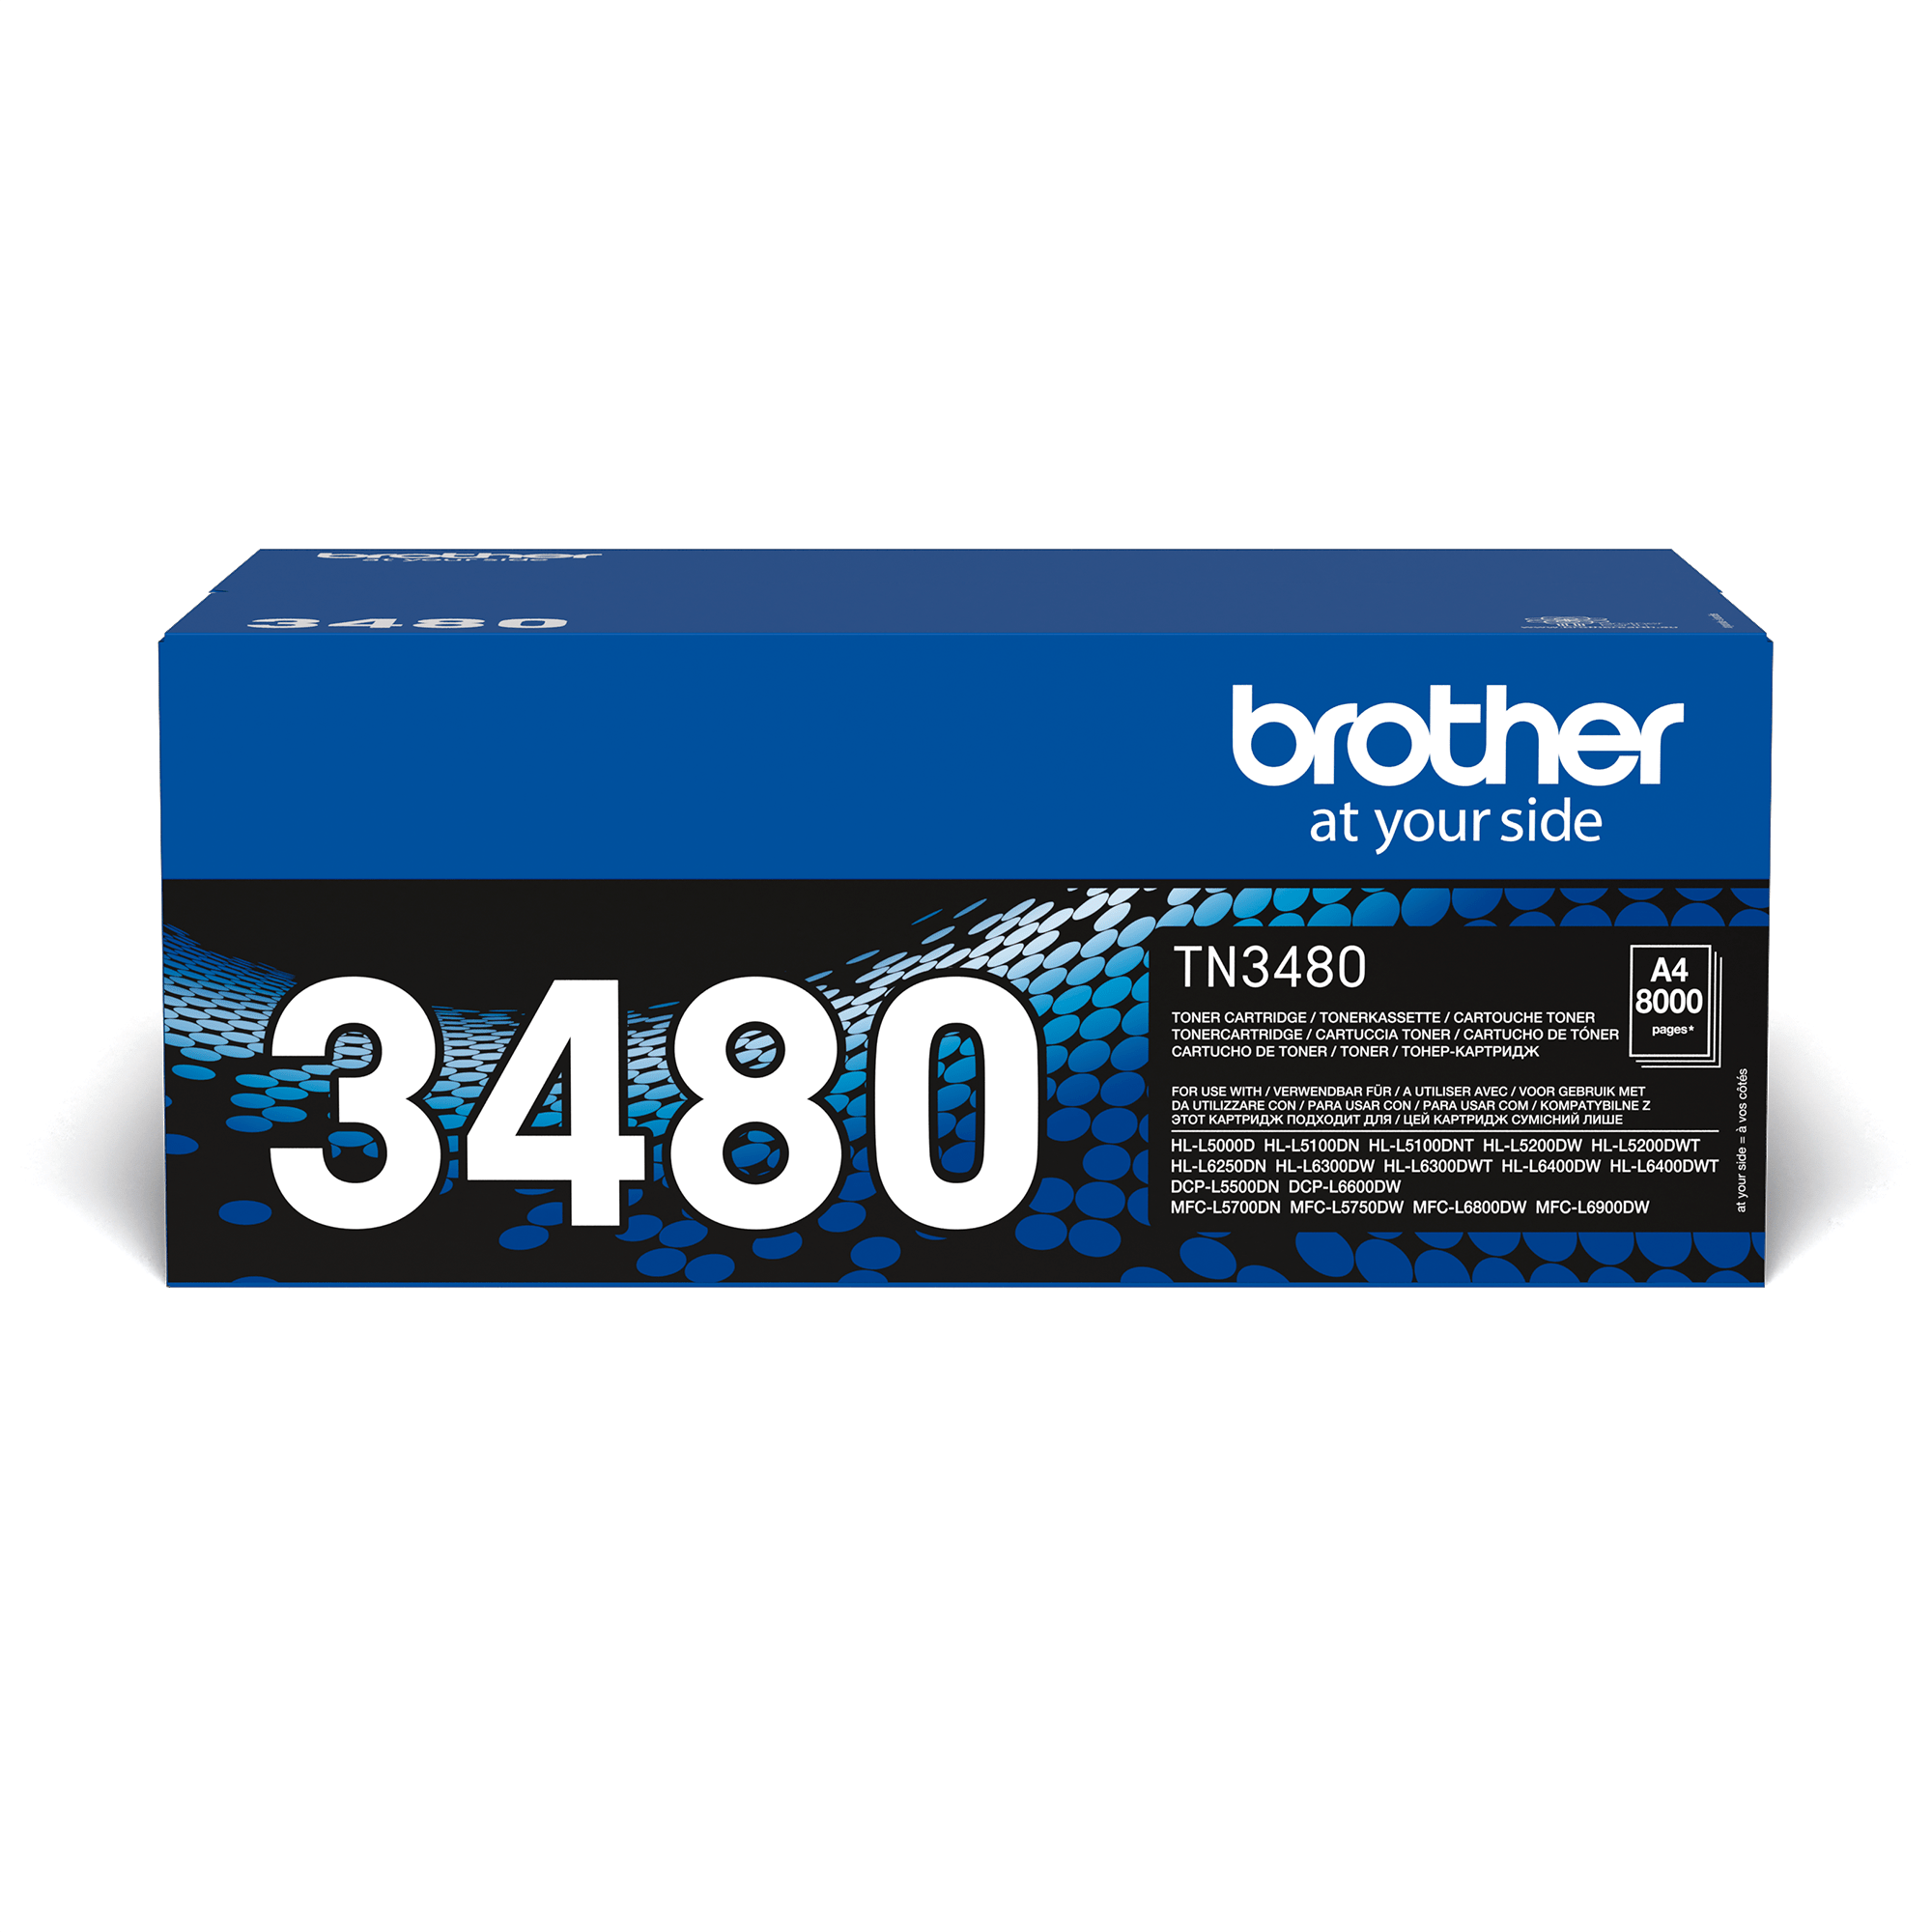 Originalen Brother TN-3480 veliki toner – črn